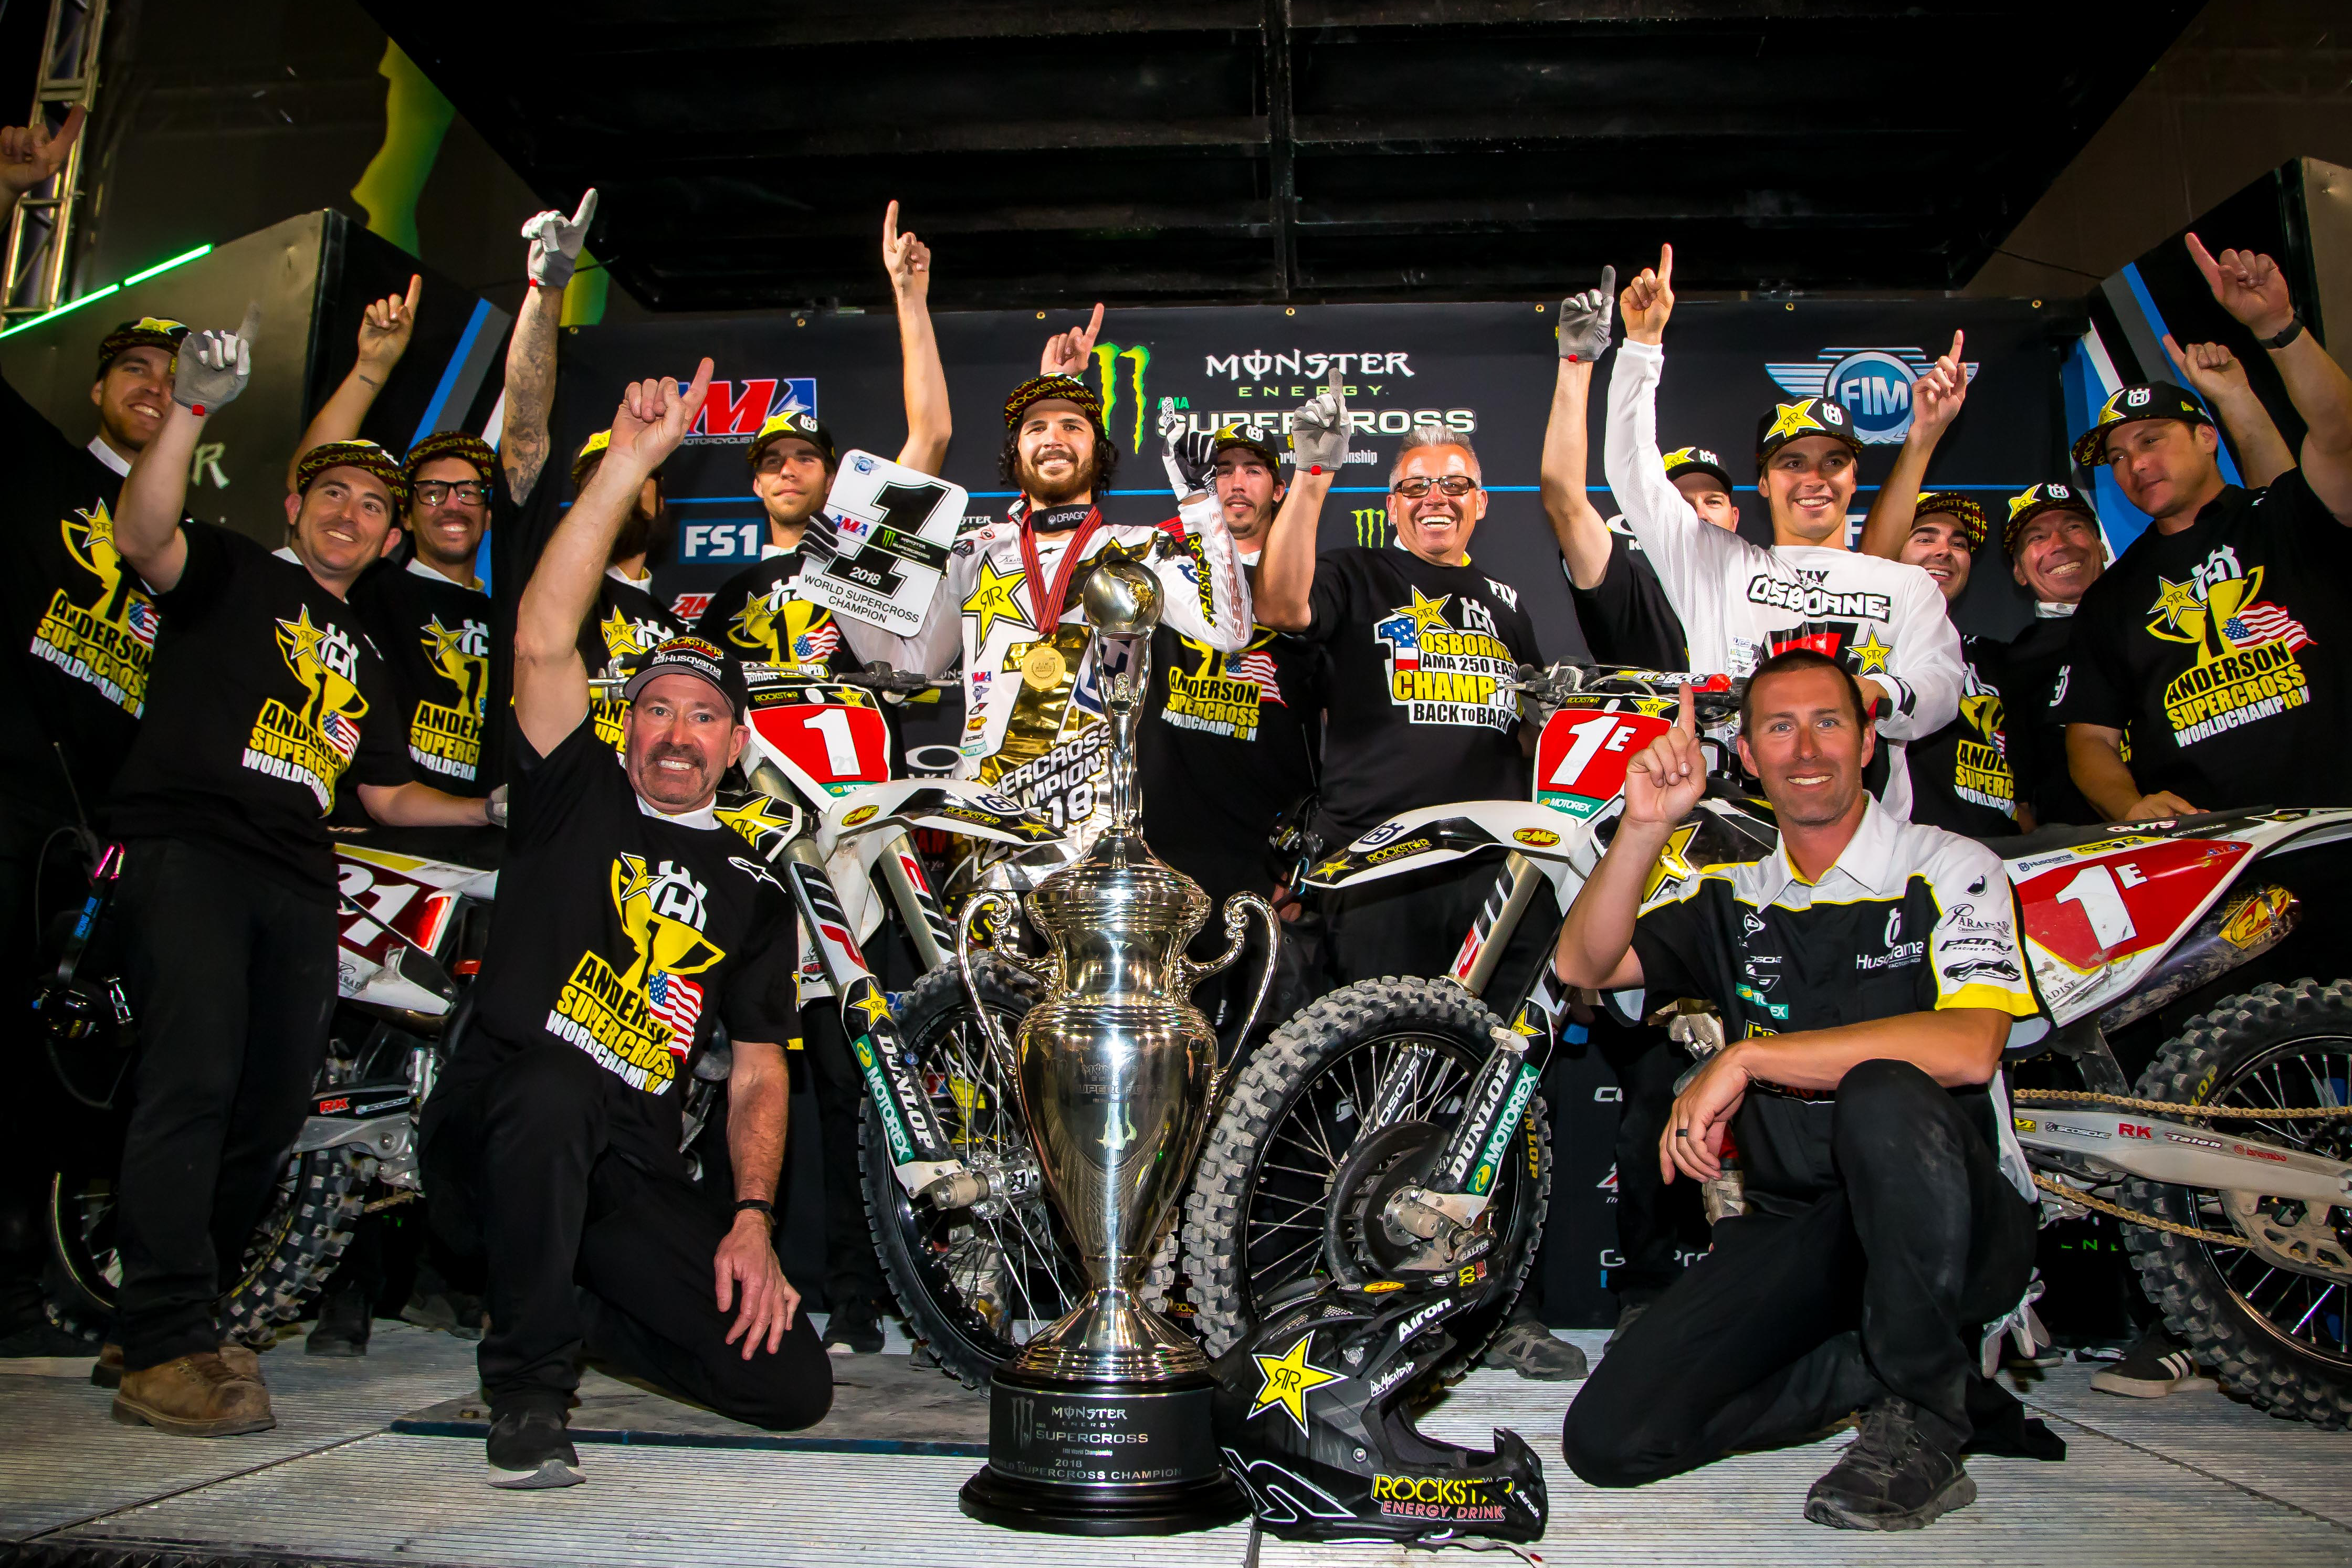 6c674ddfd52 ROCKSTAR ENERGY HUSQVARNA FACTORY RACING MAKES HISTORY AS ANDERSON AND  OSBORNE ARE CROWNED SUPERCROSS CHAMPS IN LAS VEGAS! - GH Motorcycles